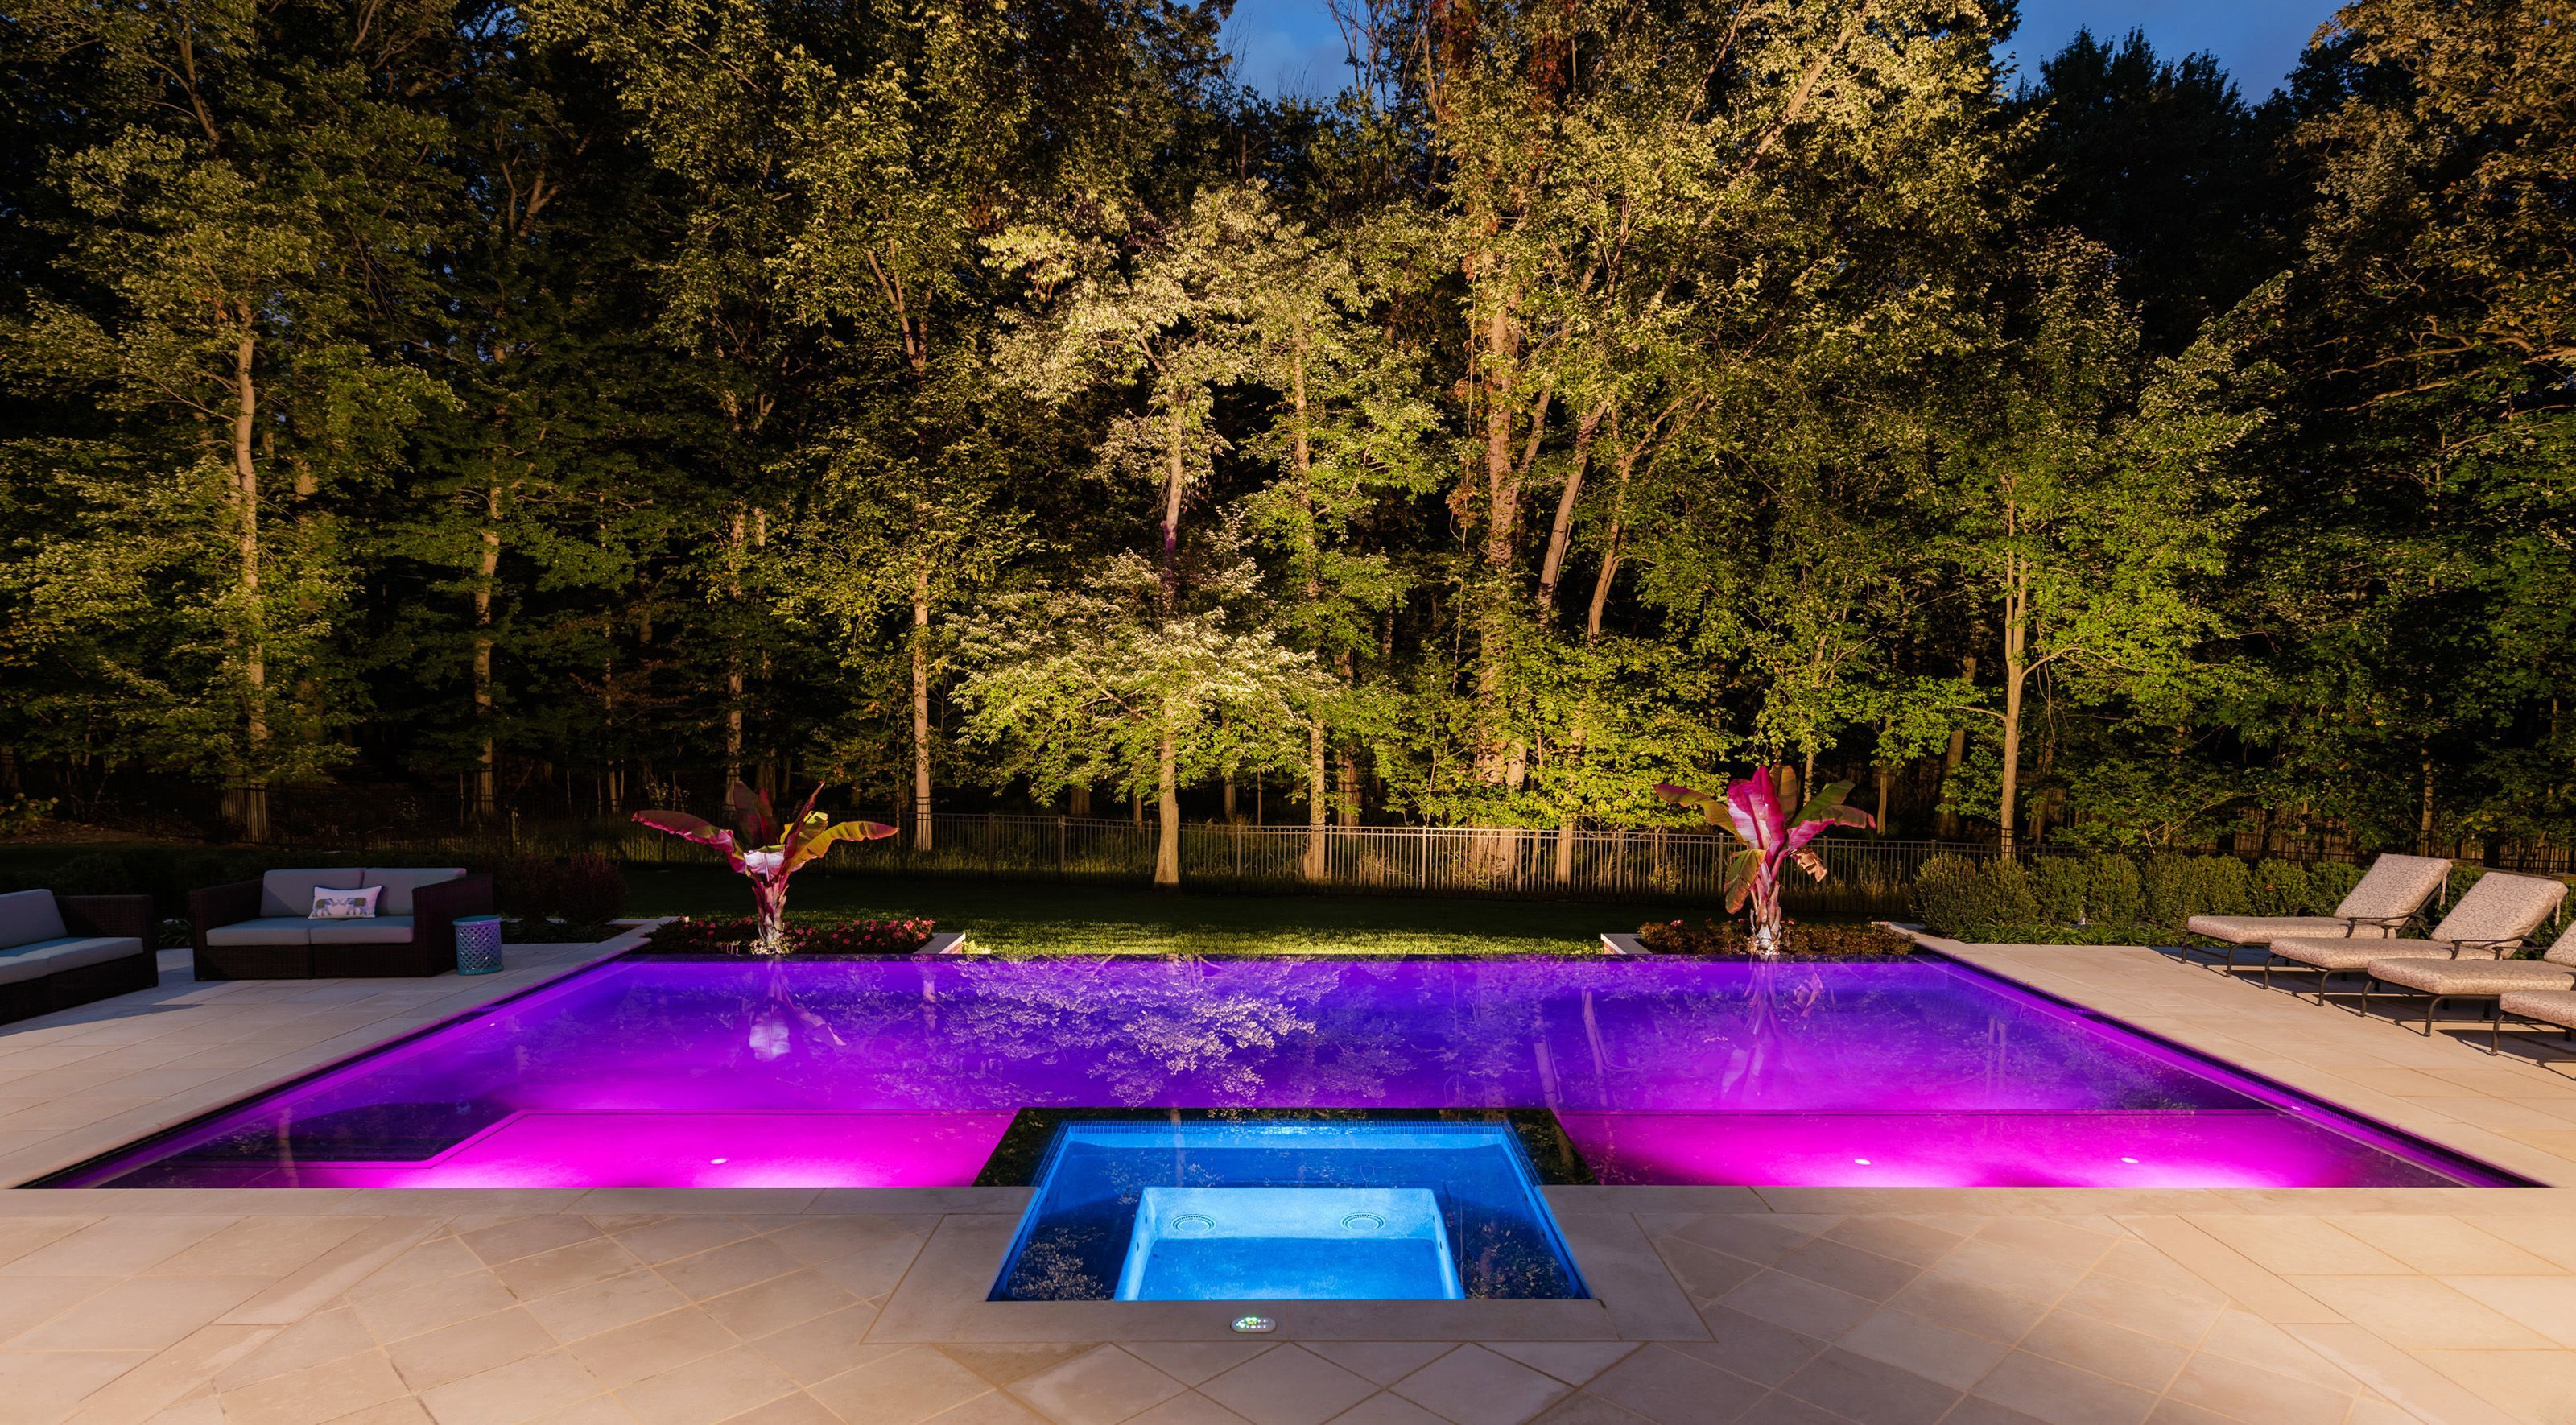 Cipriano Landscape Design & Custom Pools created this Saddle River. From waterfalls to Wifi hotspots, today's modern poolscapes are sophisticated retreats designed with the finest amenities:   Brooke Perry reports for The Bergen Record  backyard.